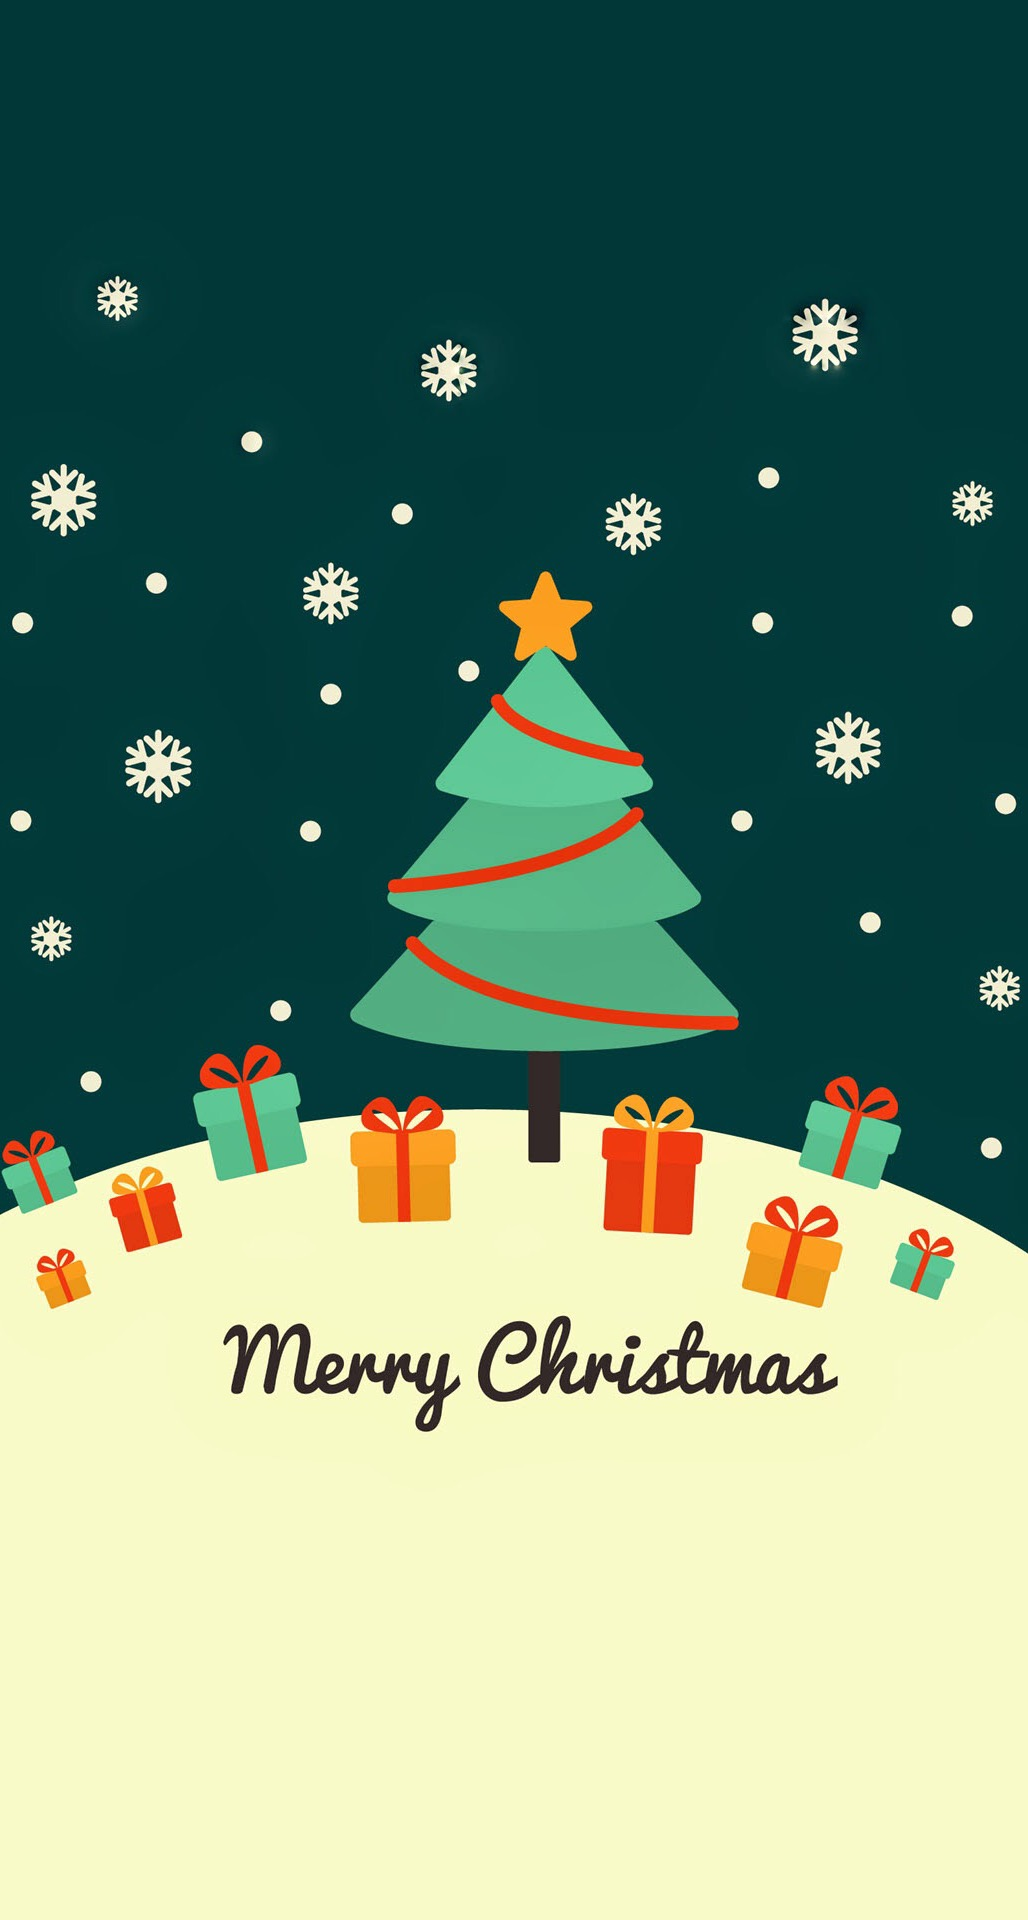 Christmas IPhone Backgrounds Free Download